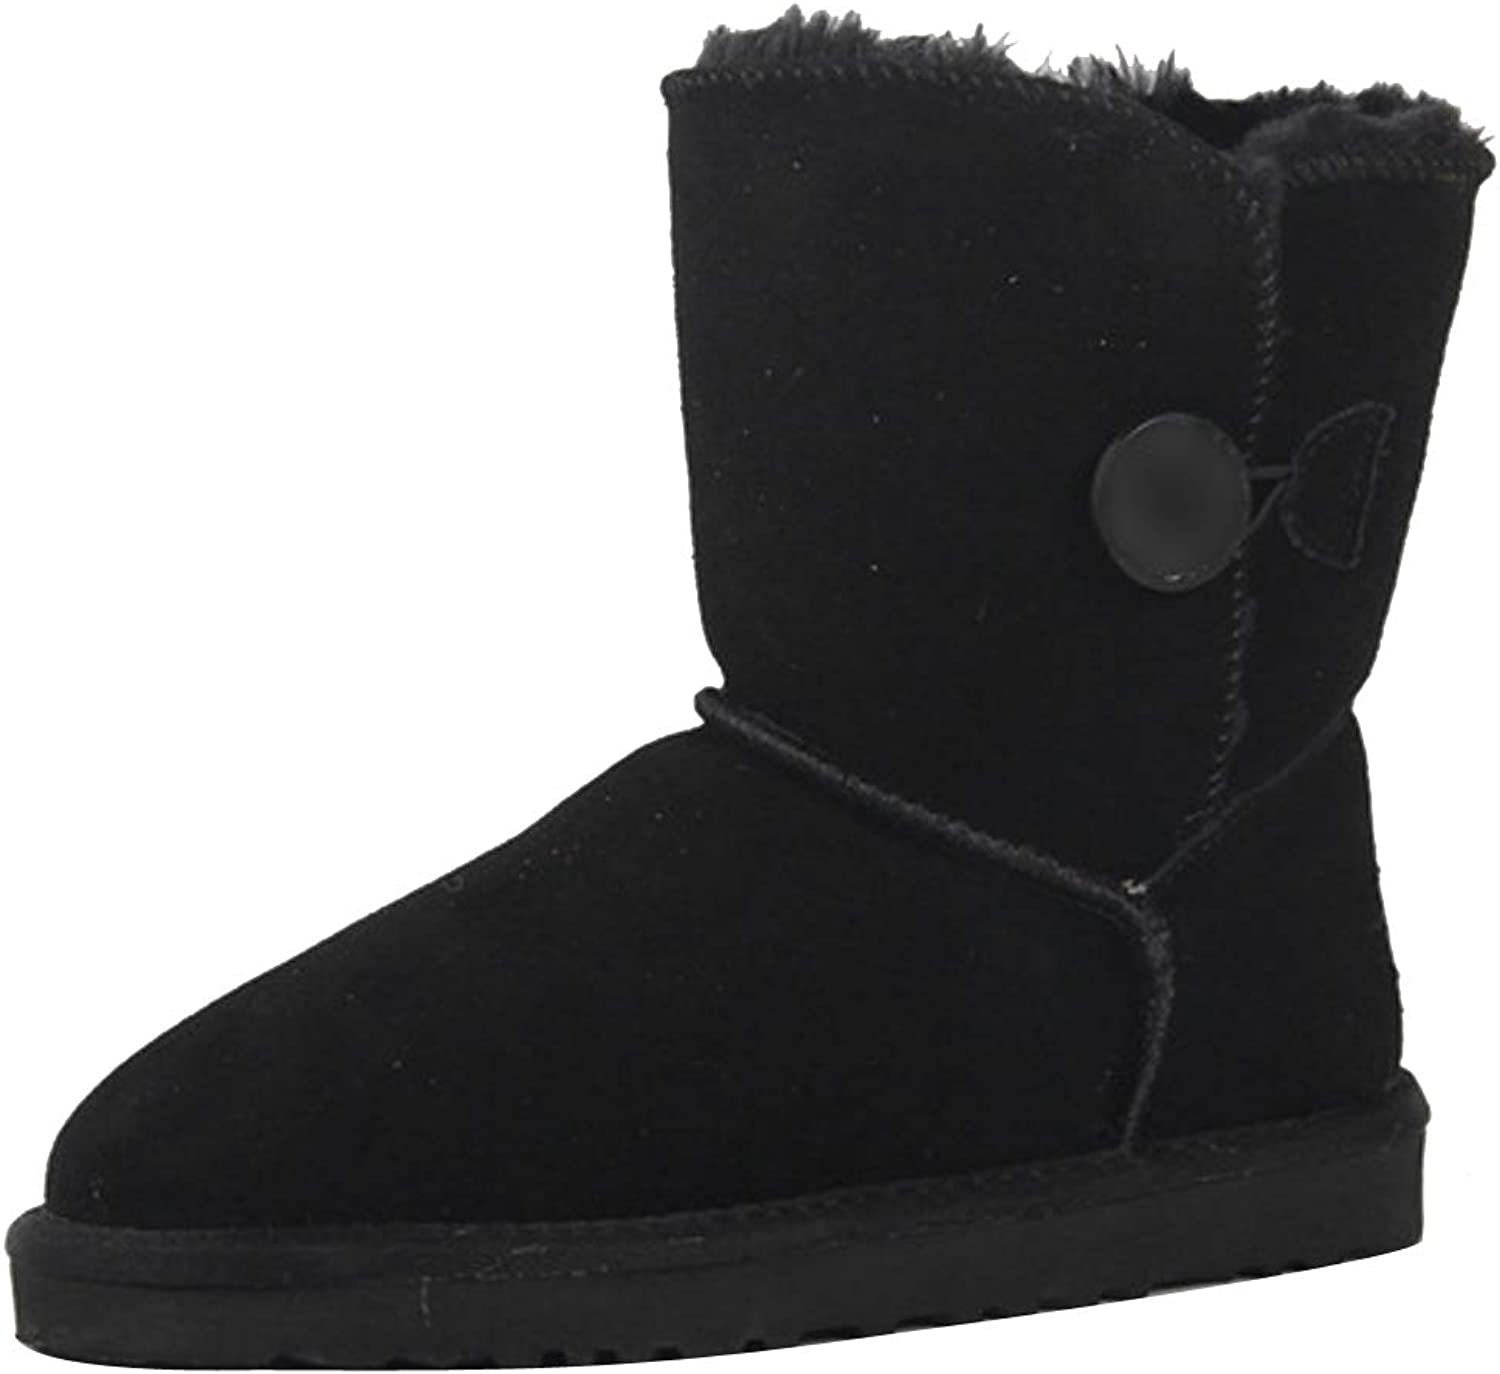 Themost Snow Boots Women's Suede Leather Sheepskin Fur Lining Winter Boot Walk Ankle Booties Black